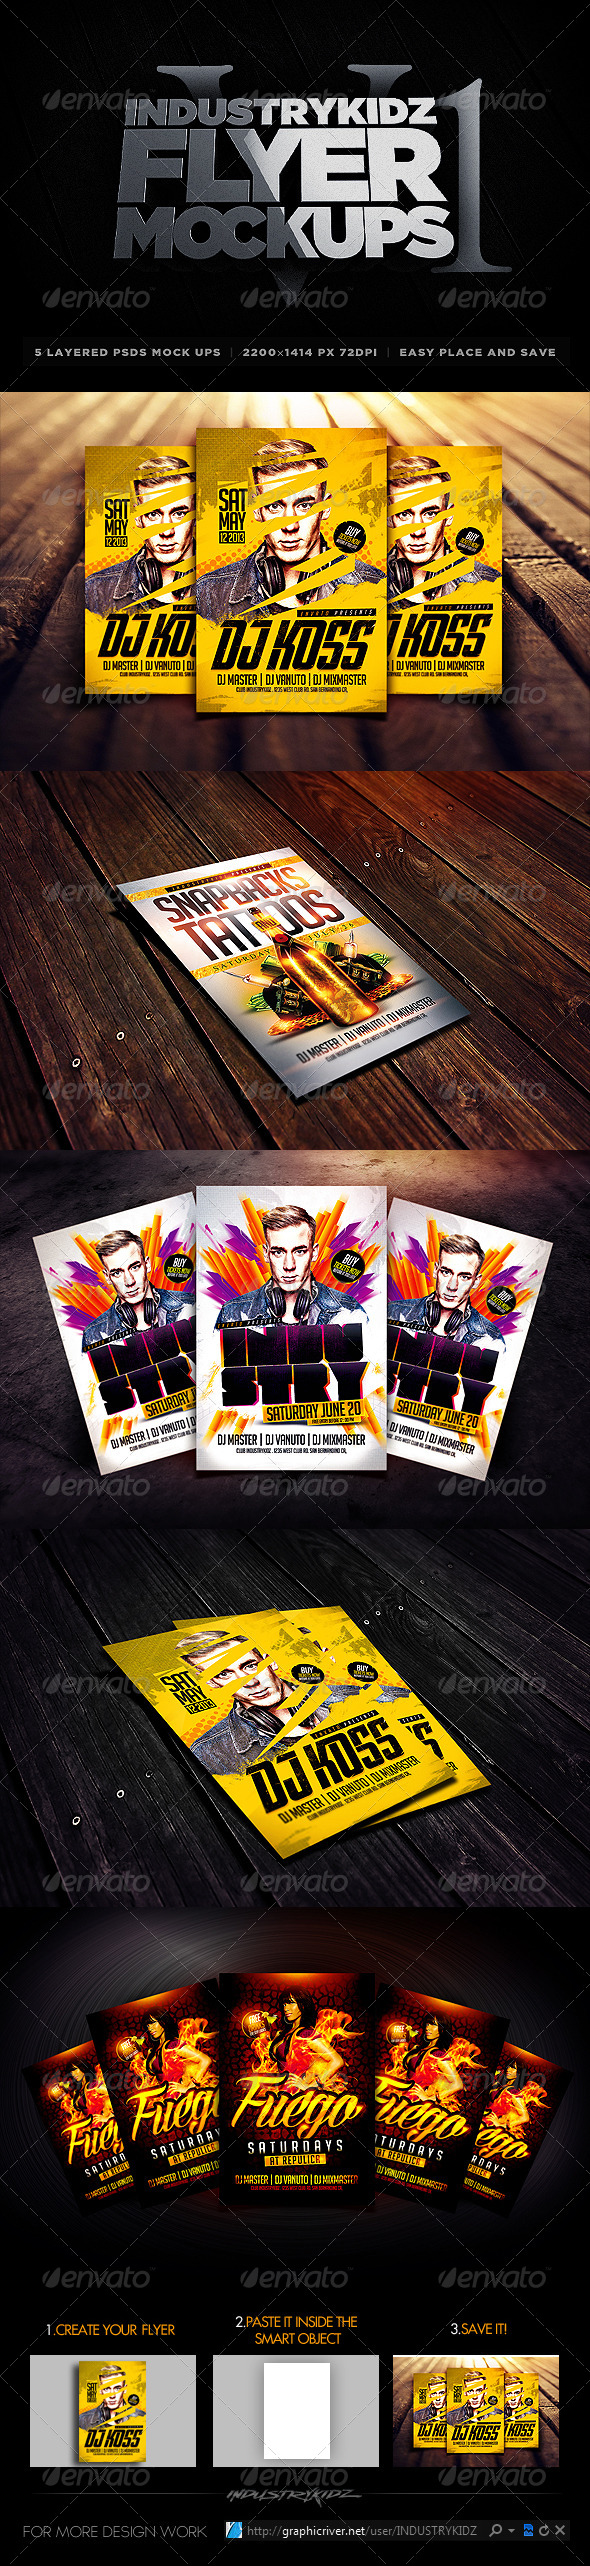 GraphicRiver Flyer Mock-Ups 5094947